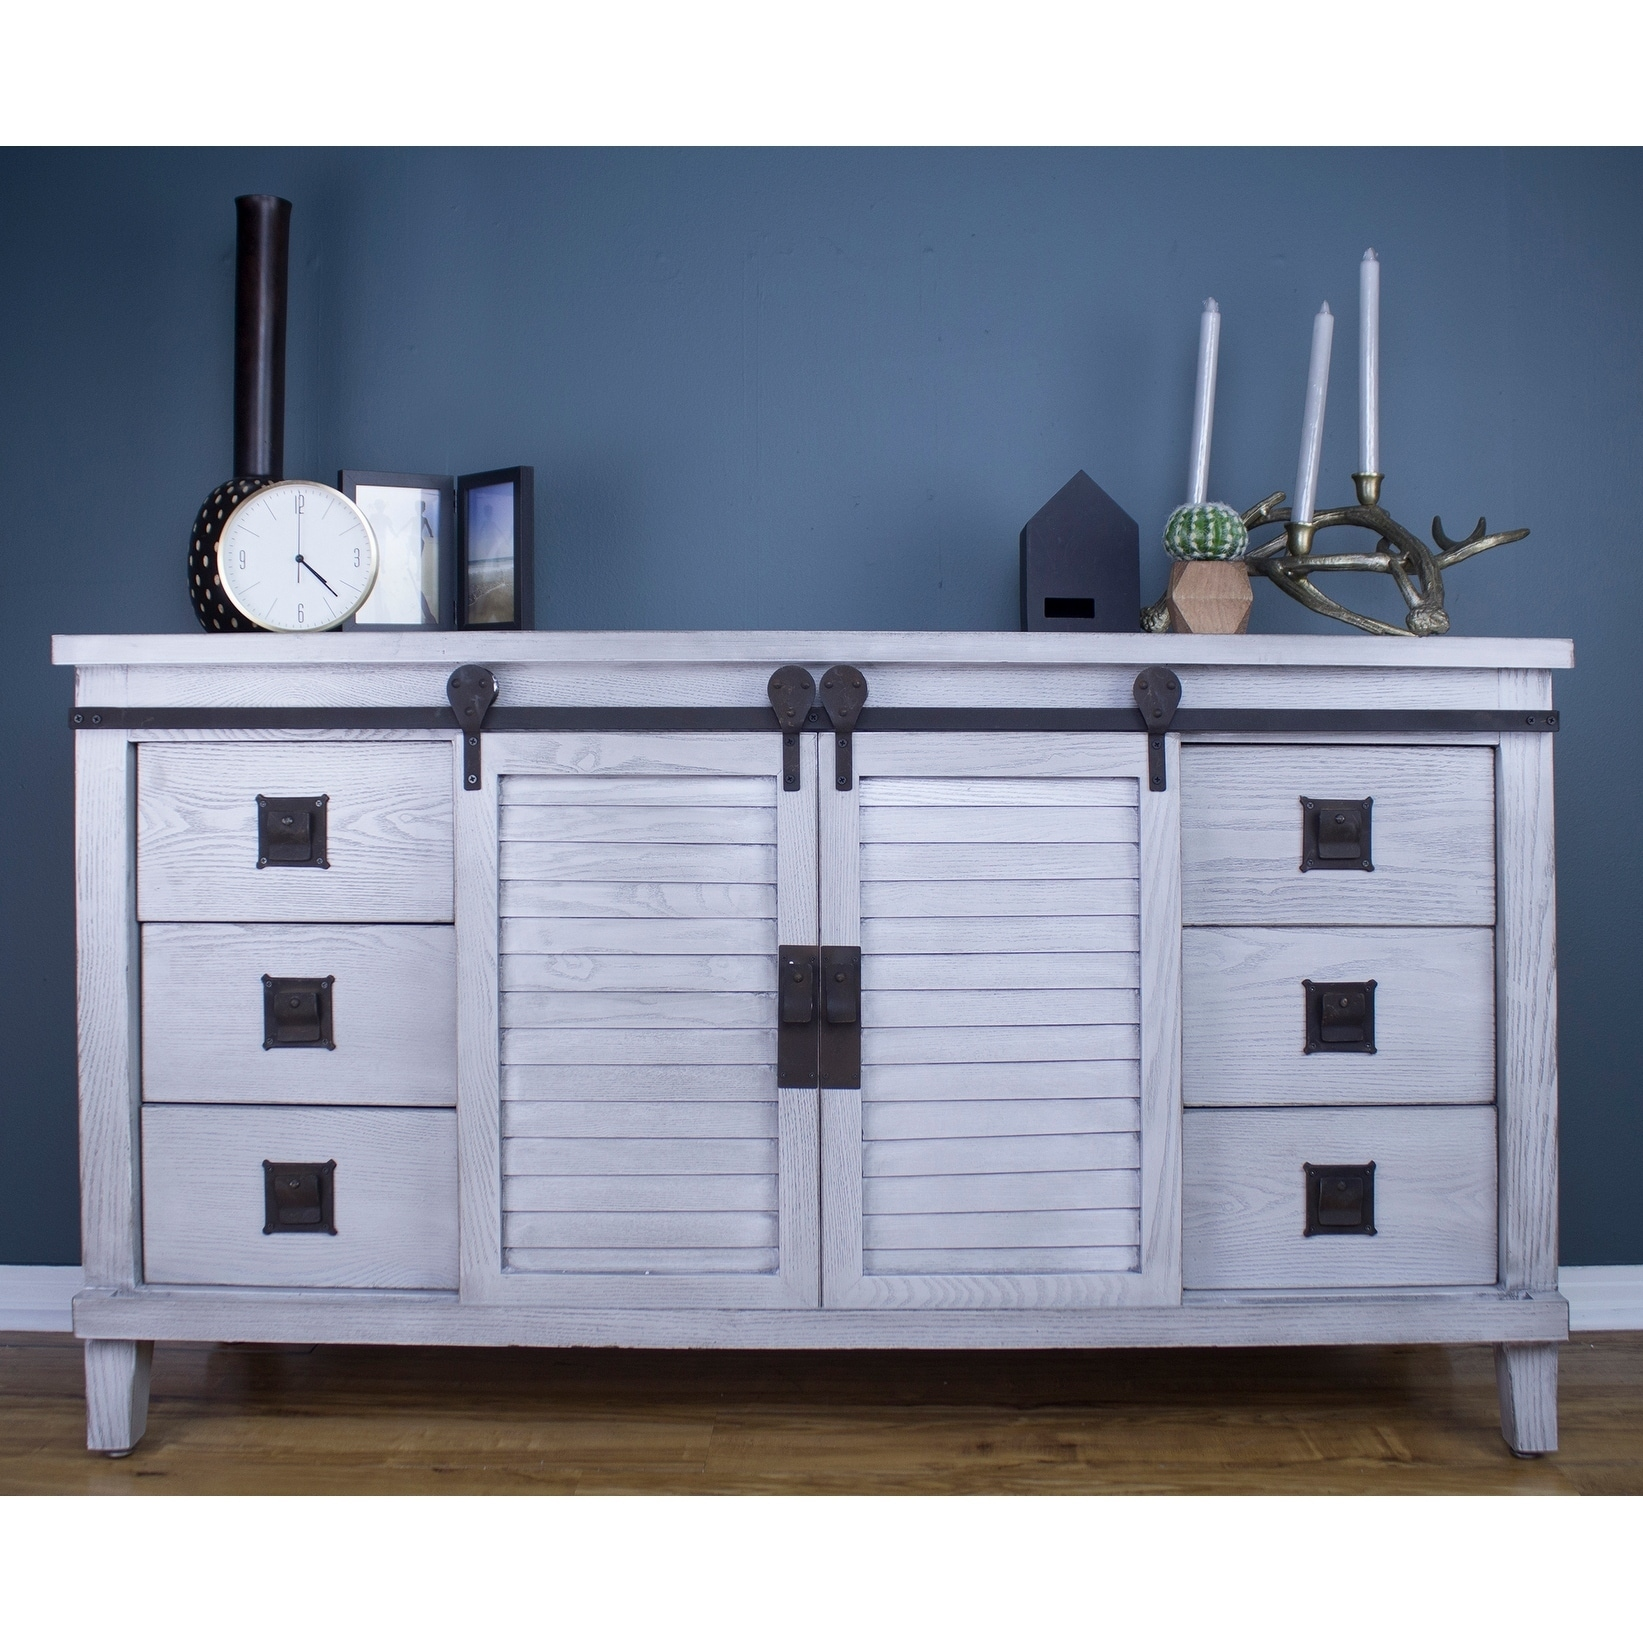 Genial Shop Southport Grey Farmhouse Barndoor Wood And Metal Buffet Cabinet   Free  Shipping Today   Overstock.com   19759046